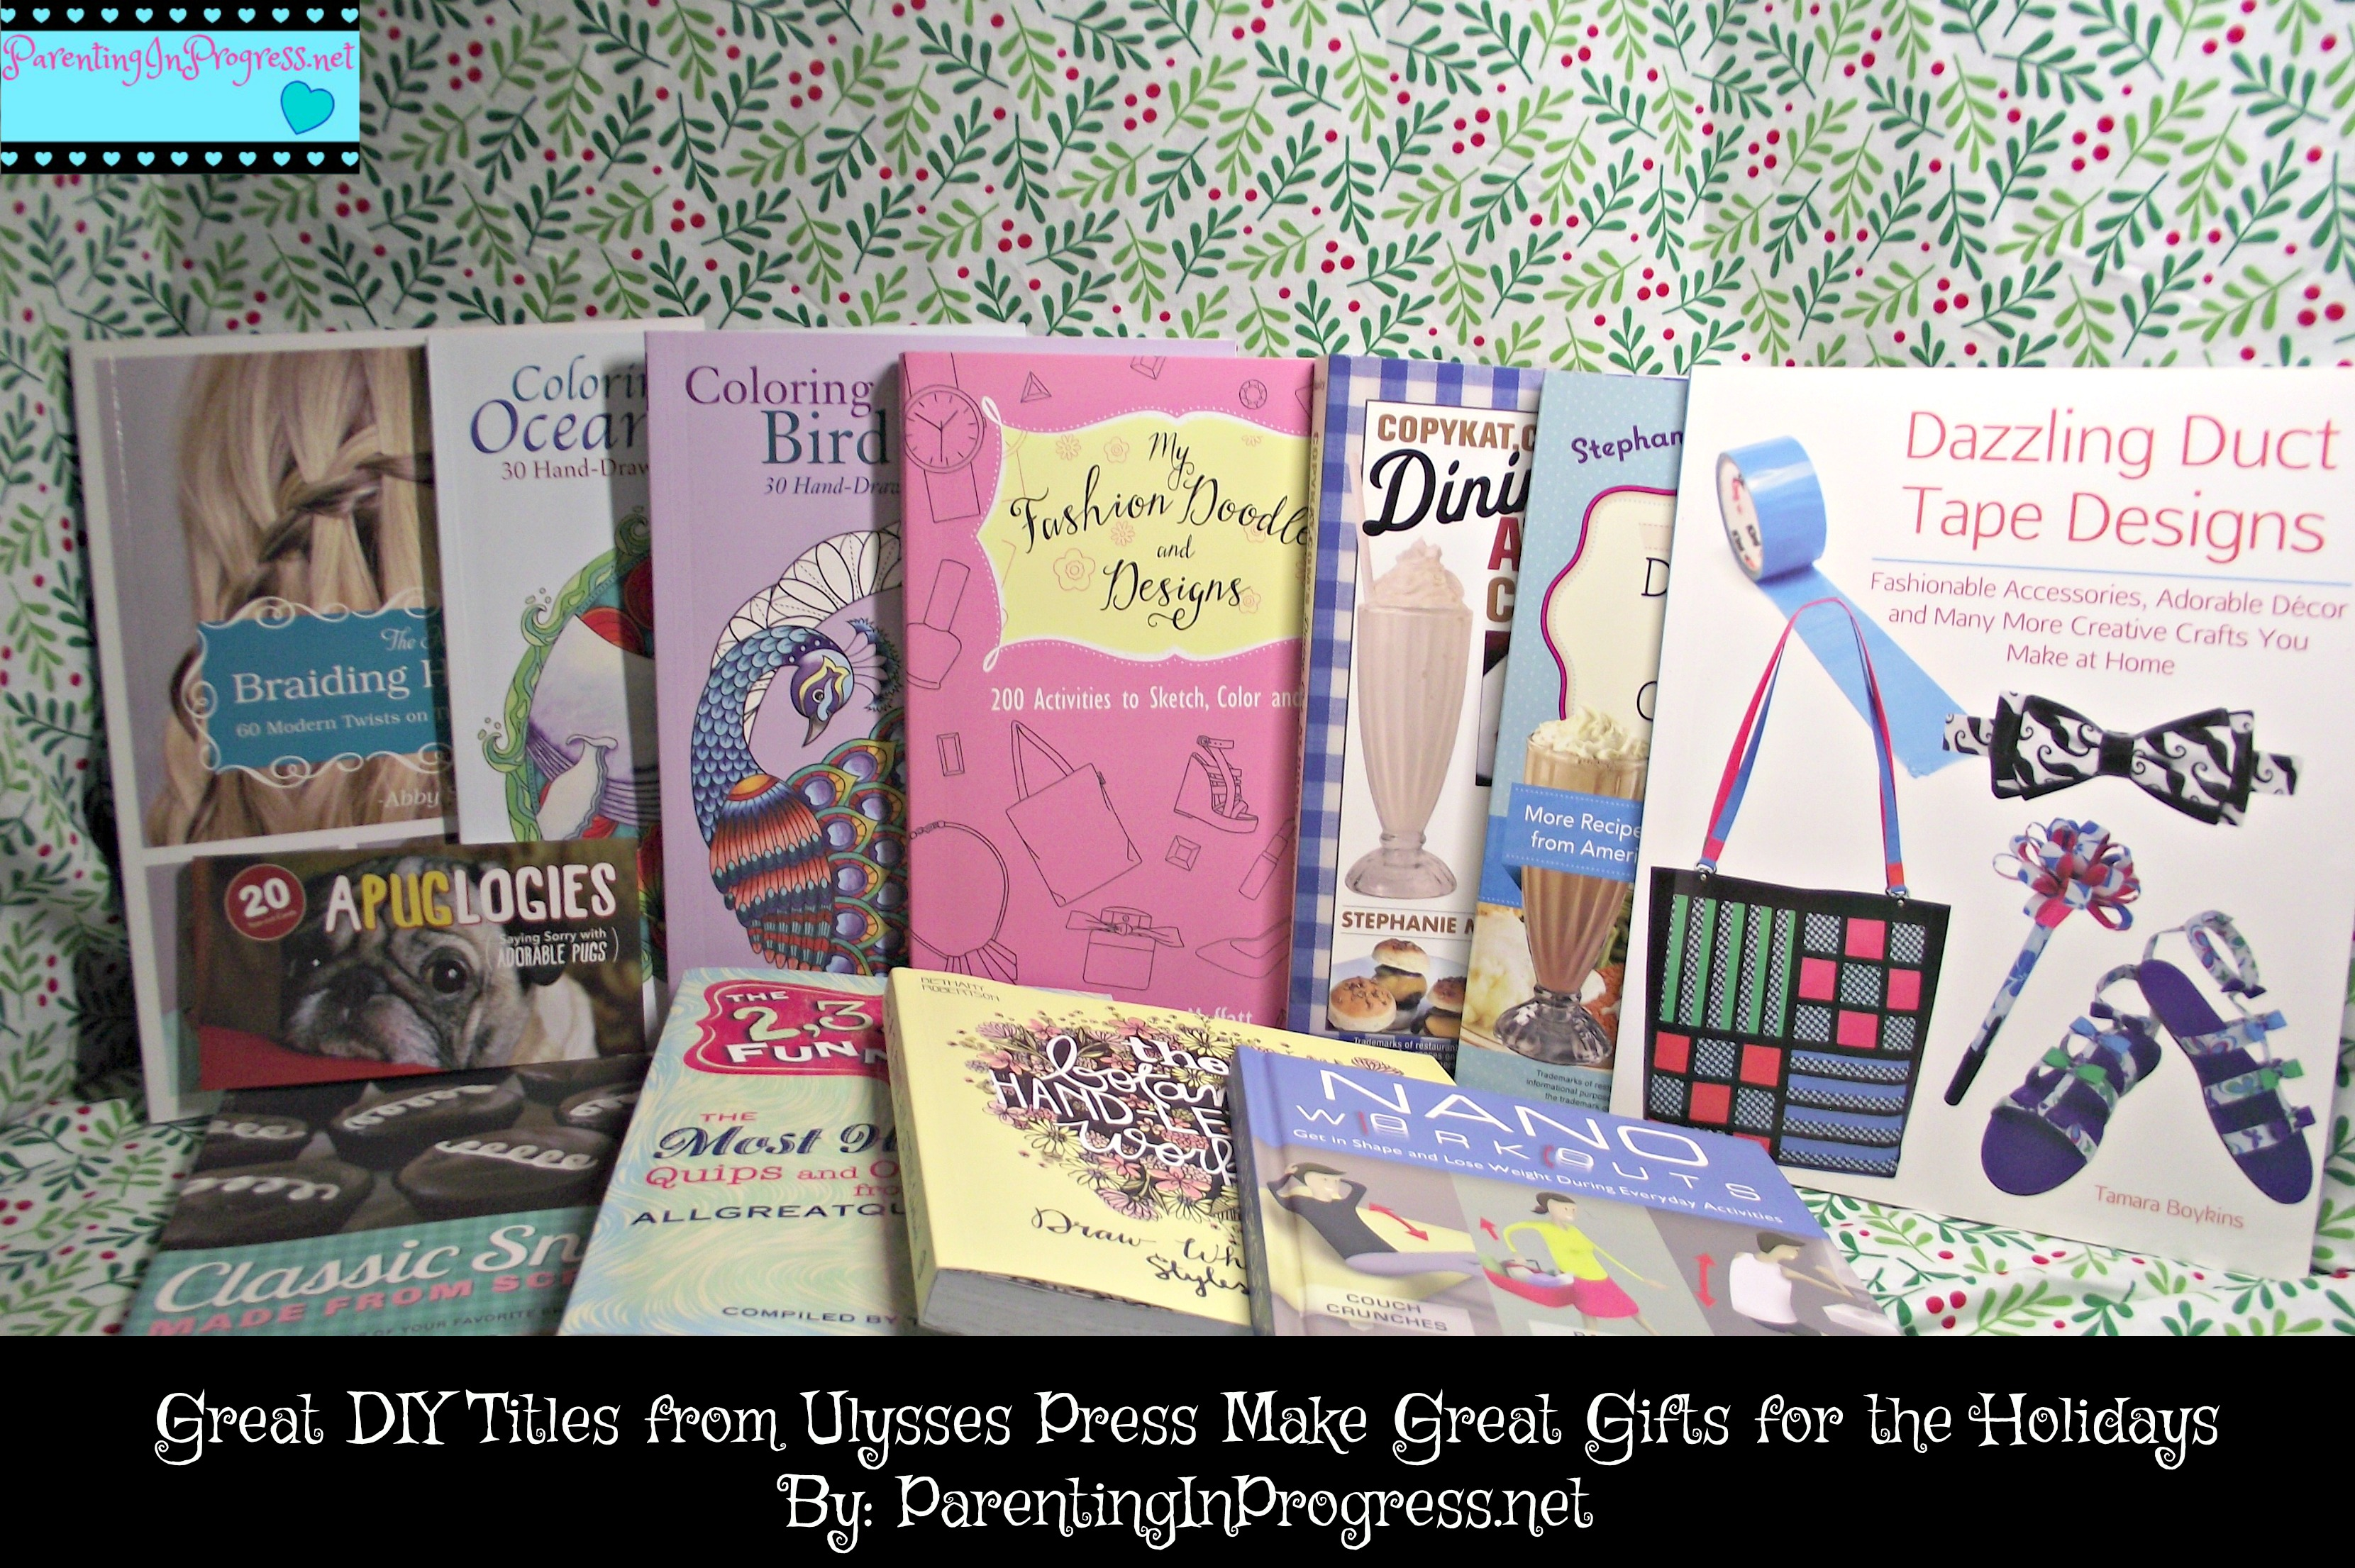 Great DIY Tittles from Ulysses Press Make Great Gifts for the Holidays